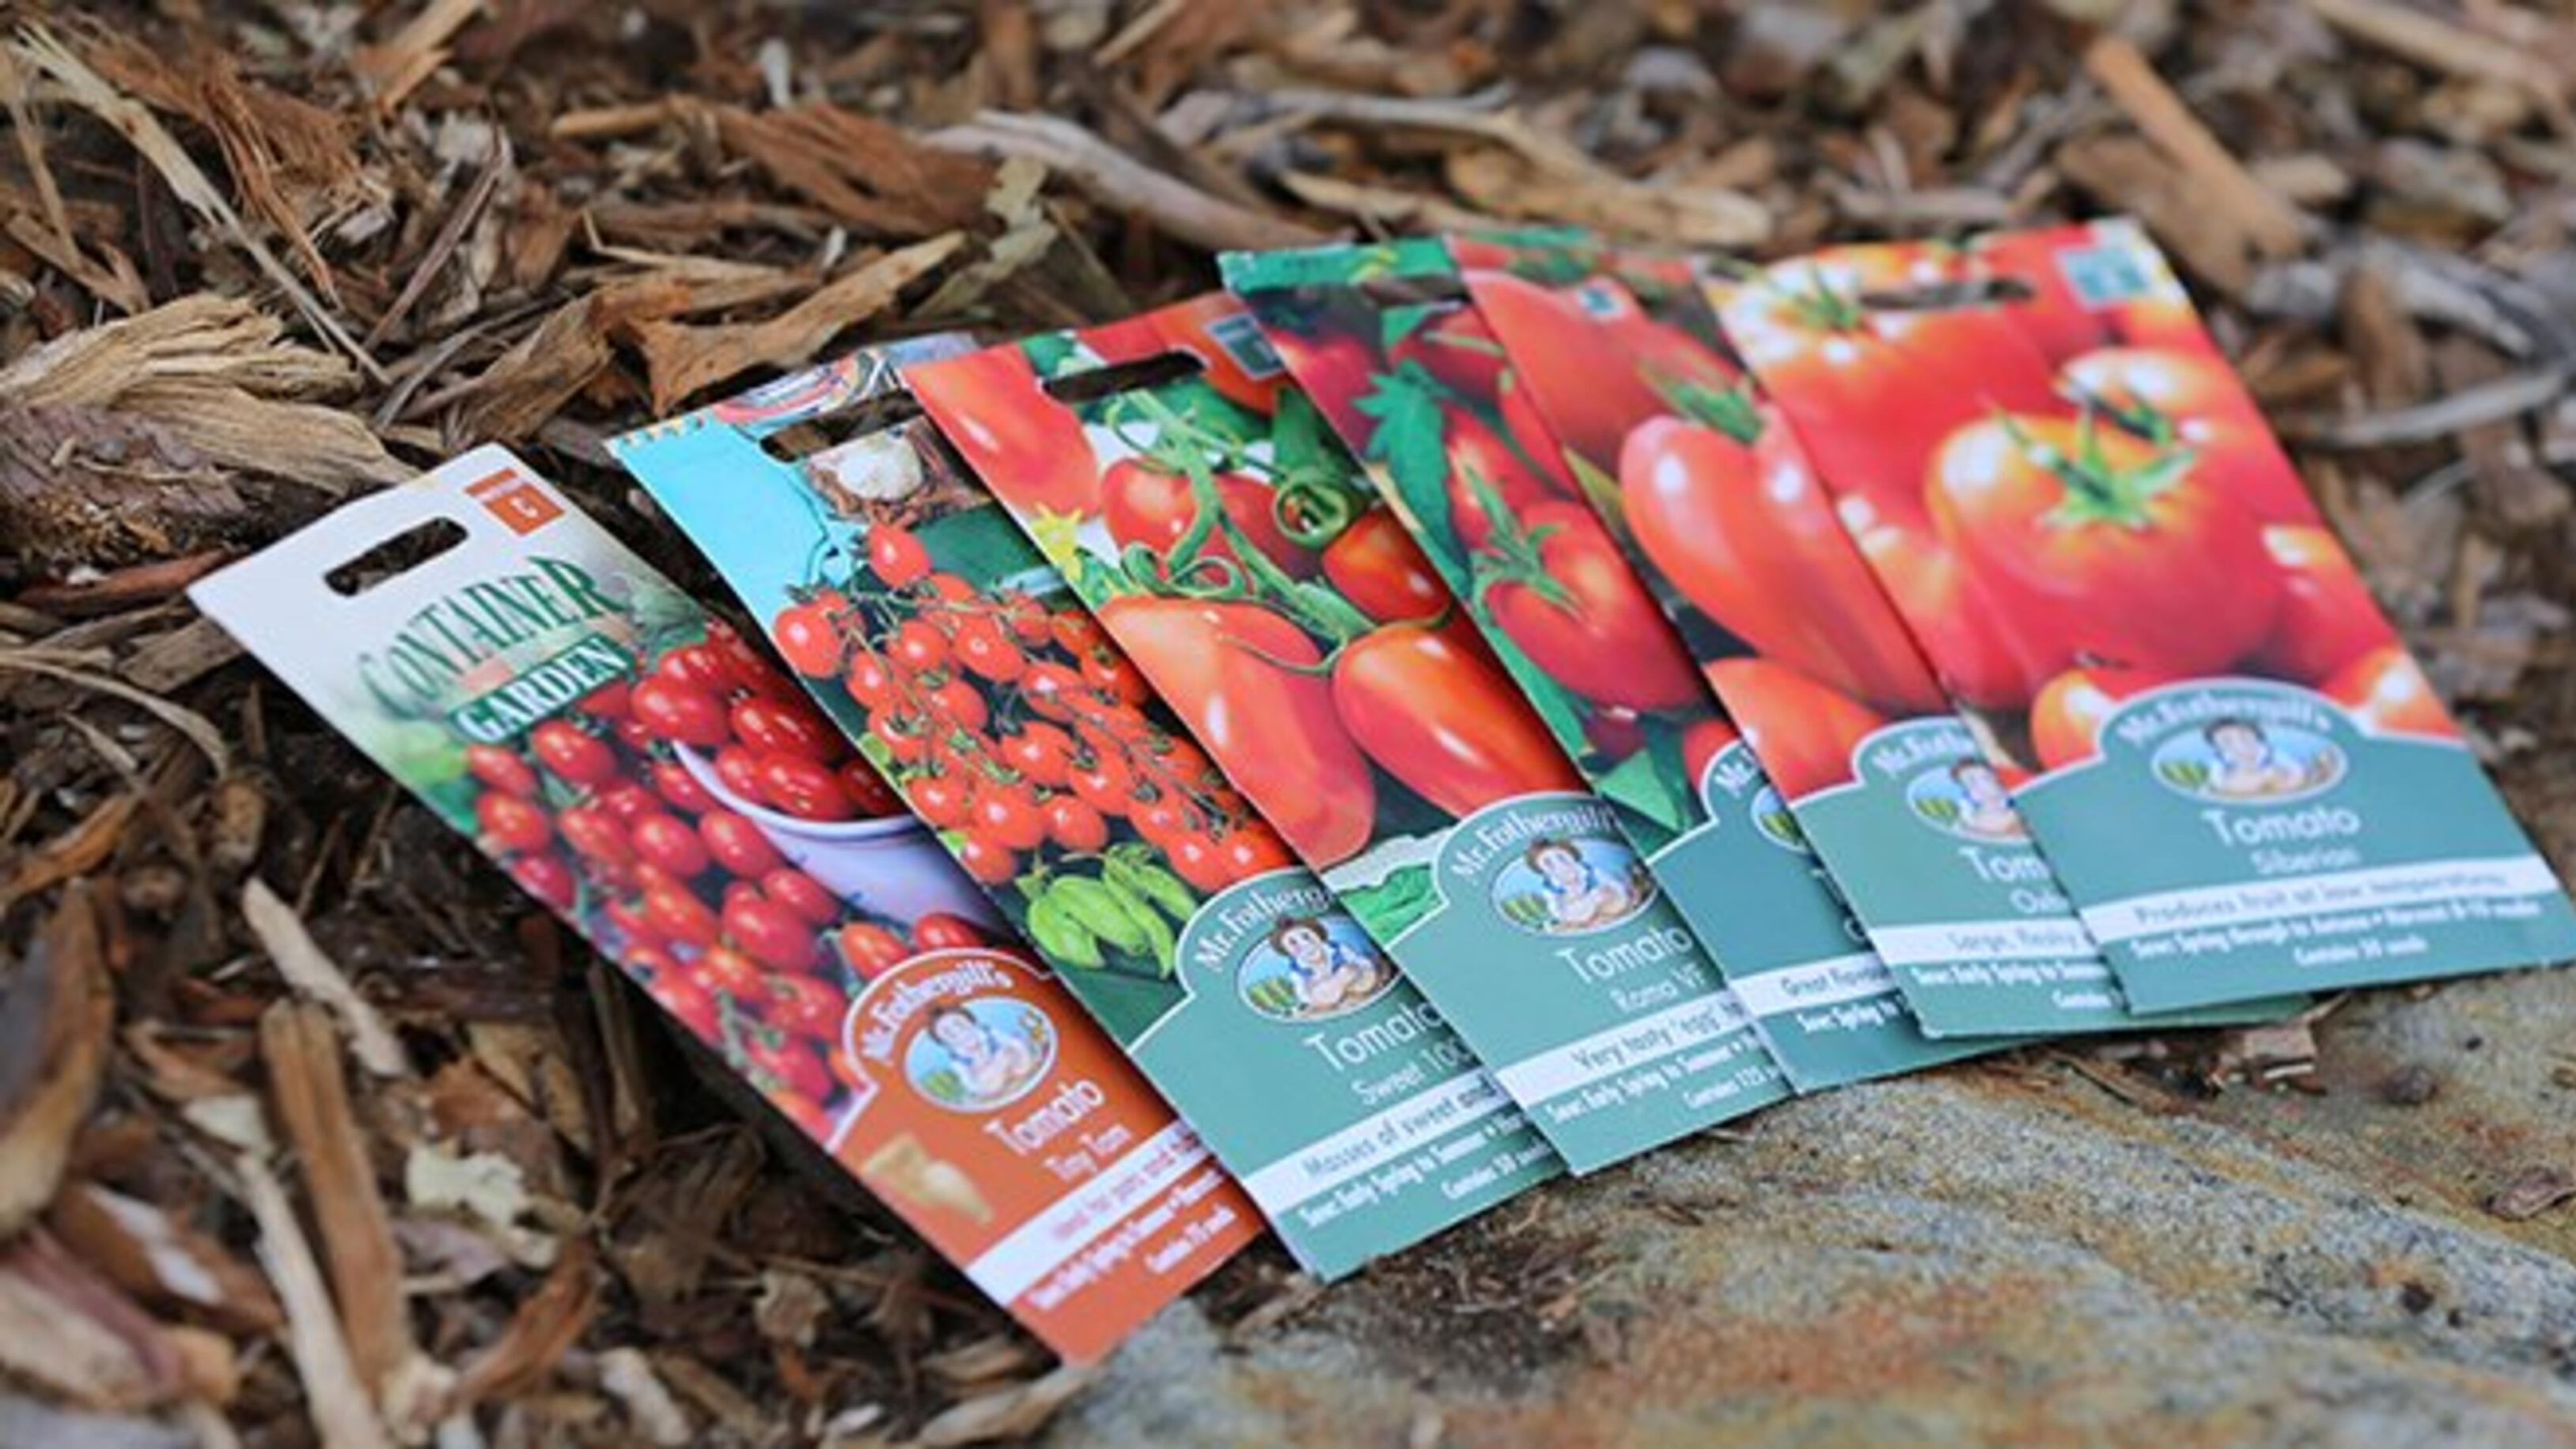 Six different varieties of tomatoes in seed packets.